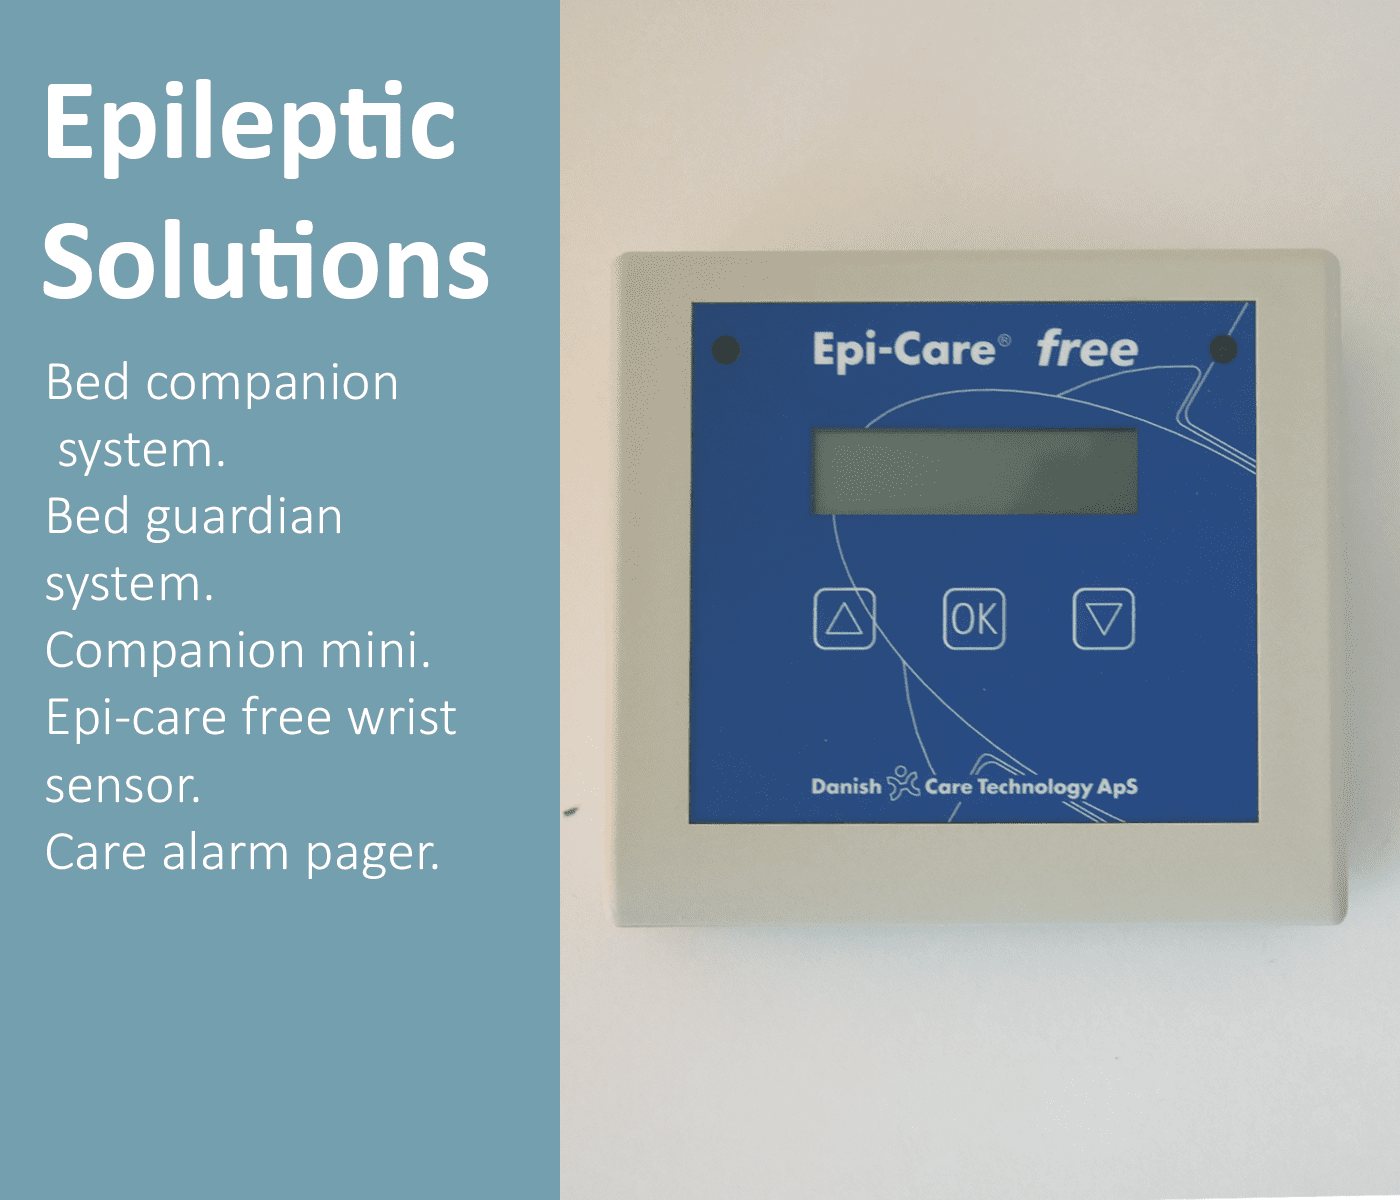 Epileptic-Solutions-new